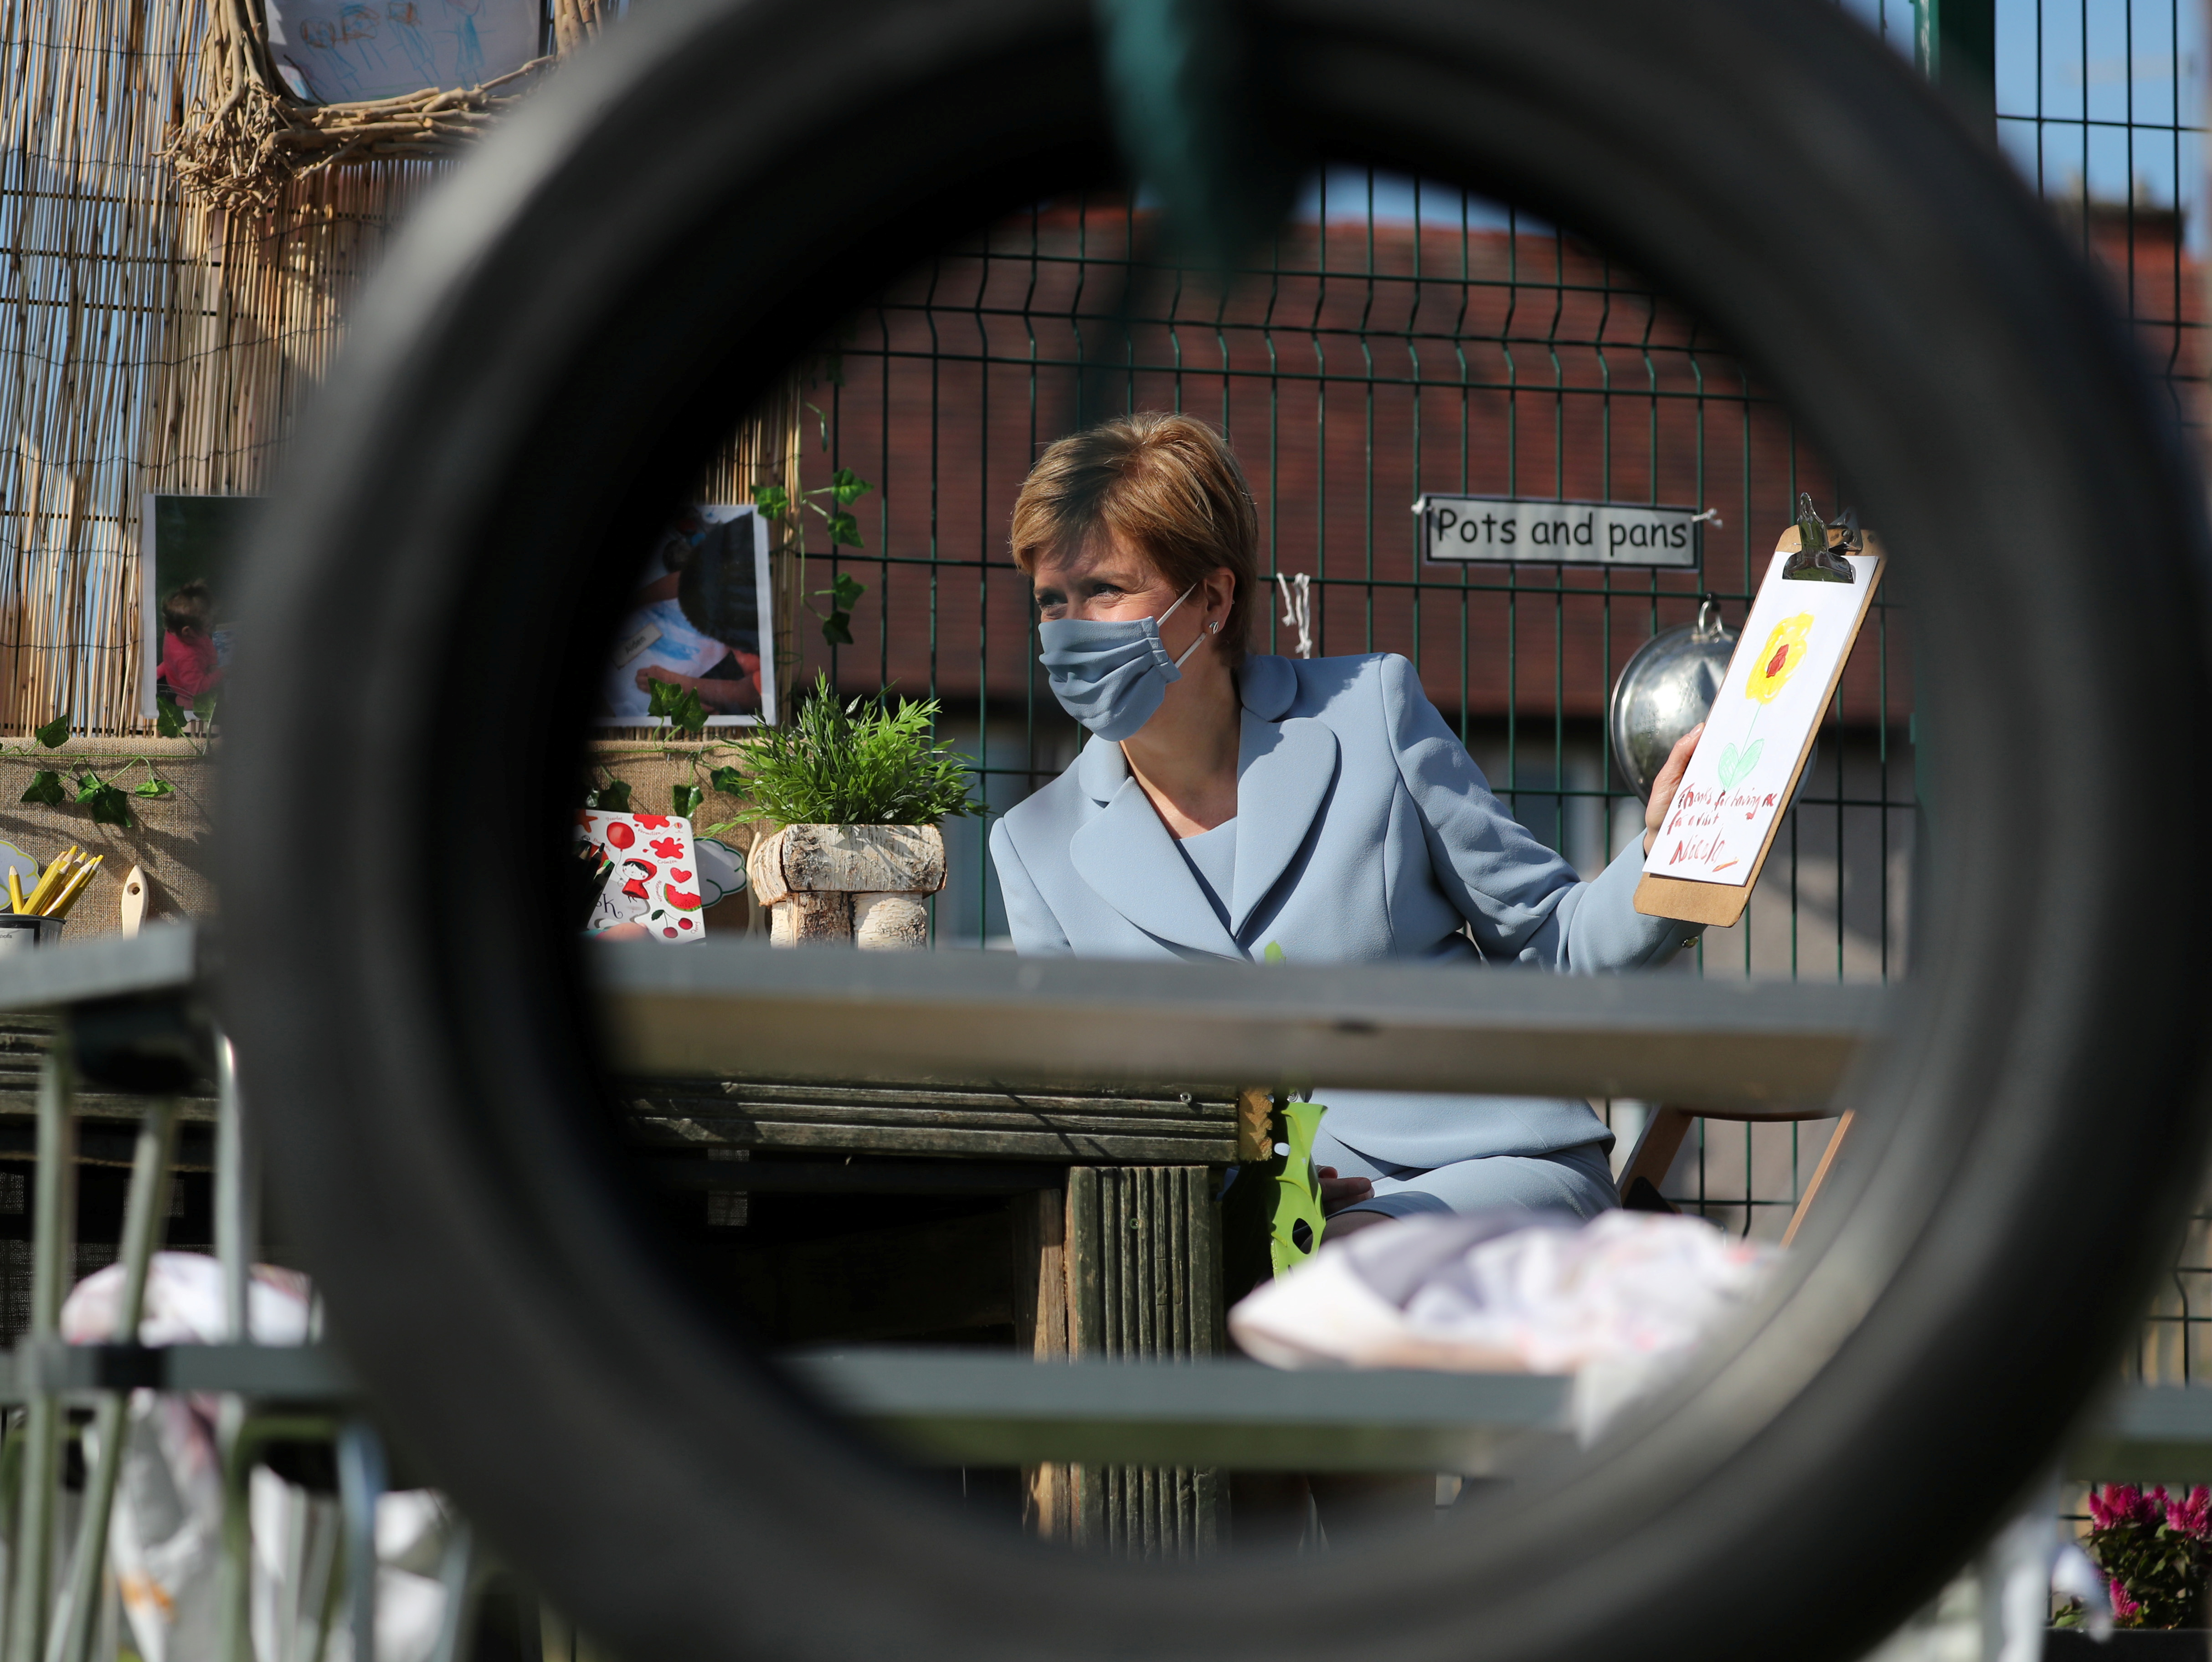 <p>First Minister Nicola Sturgeon during a visit to the Fallin Nursery in Fallin, Stirlingshire. Picture date: Wednesday August 4, 2021.</p>